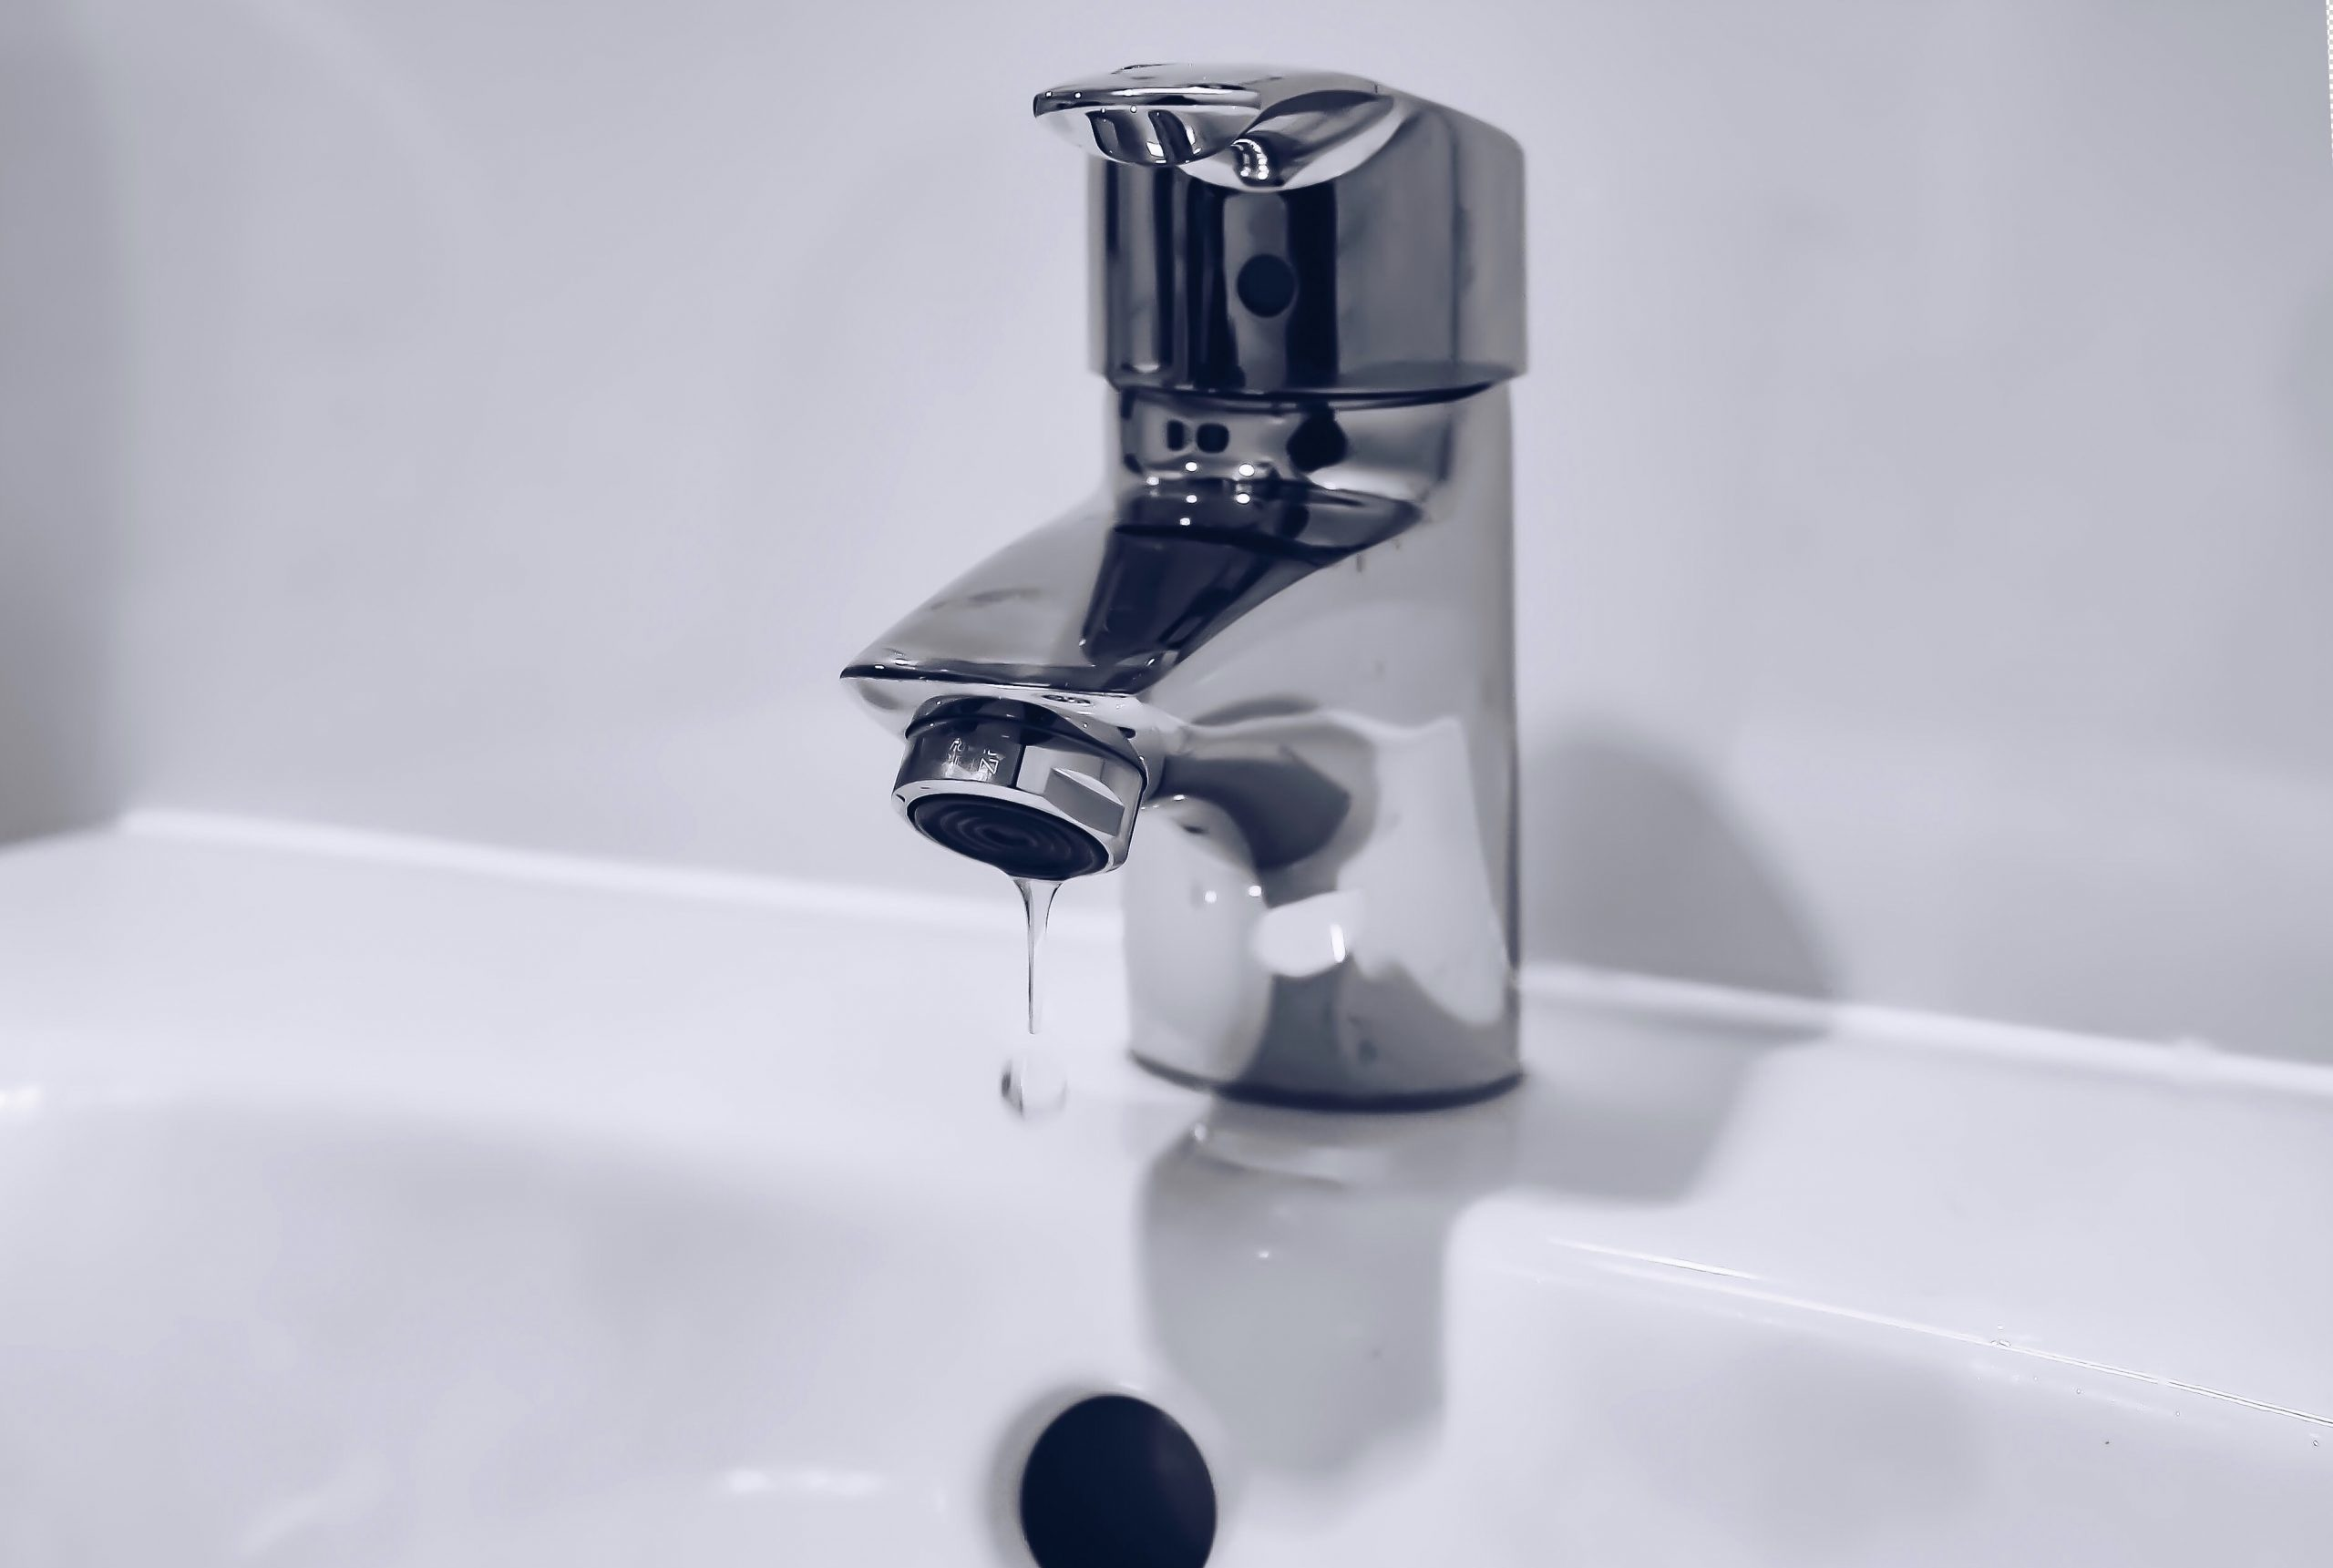 My Faucet Is Turned Off But The Water Is Still Running